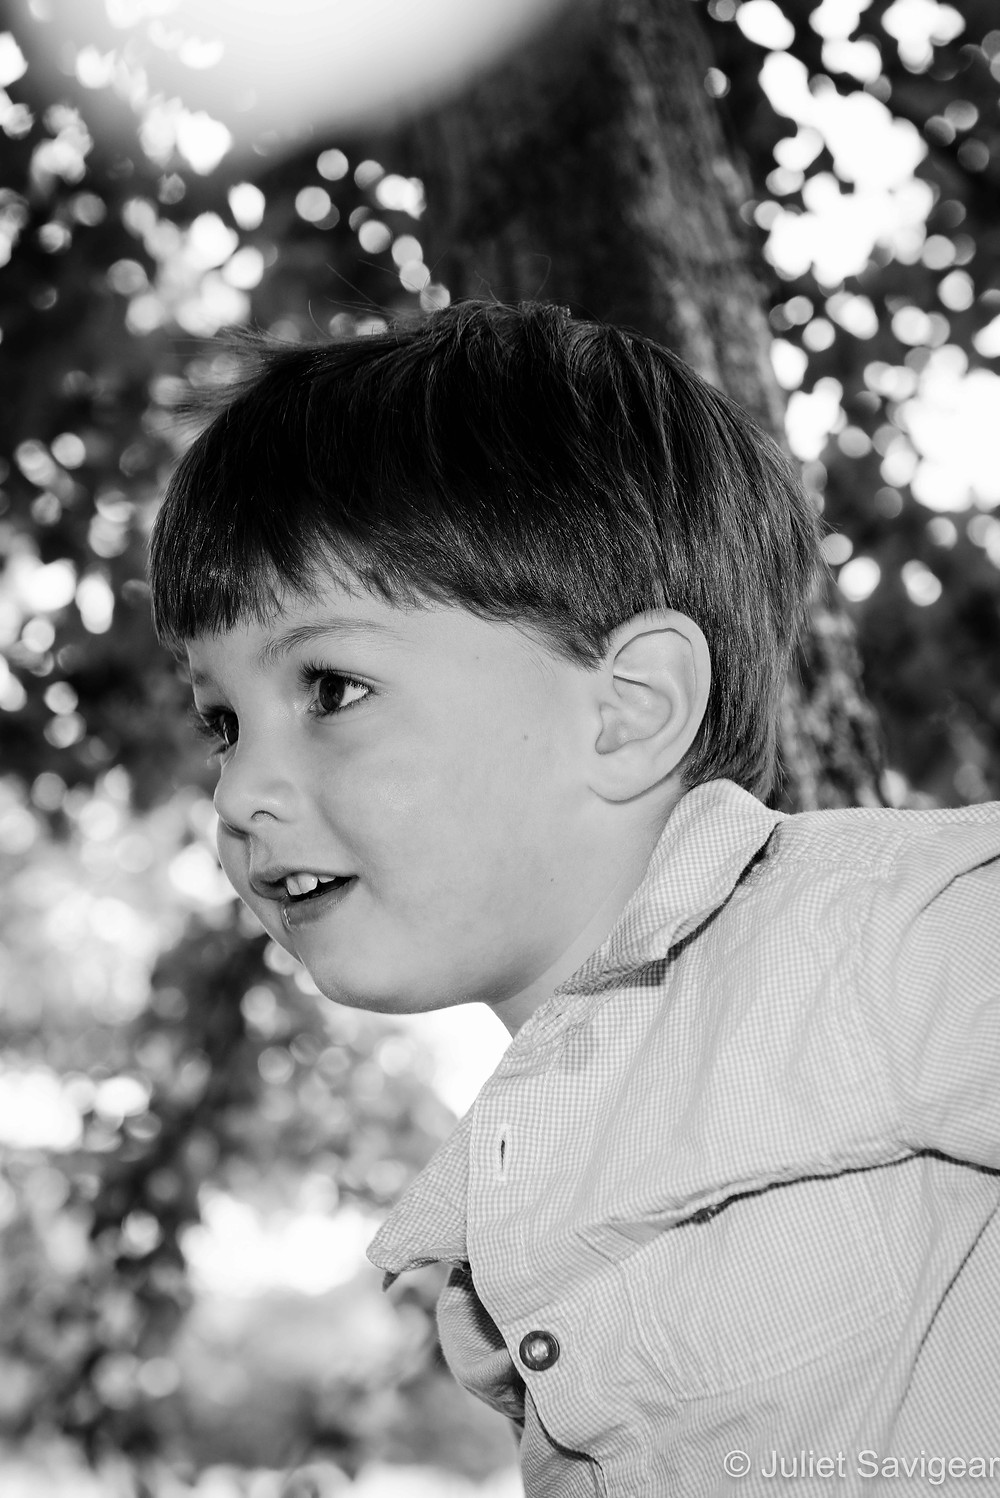 Children's Photography In The Trees